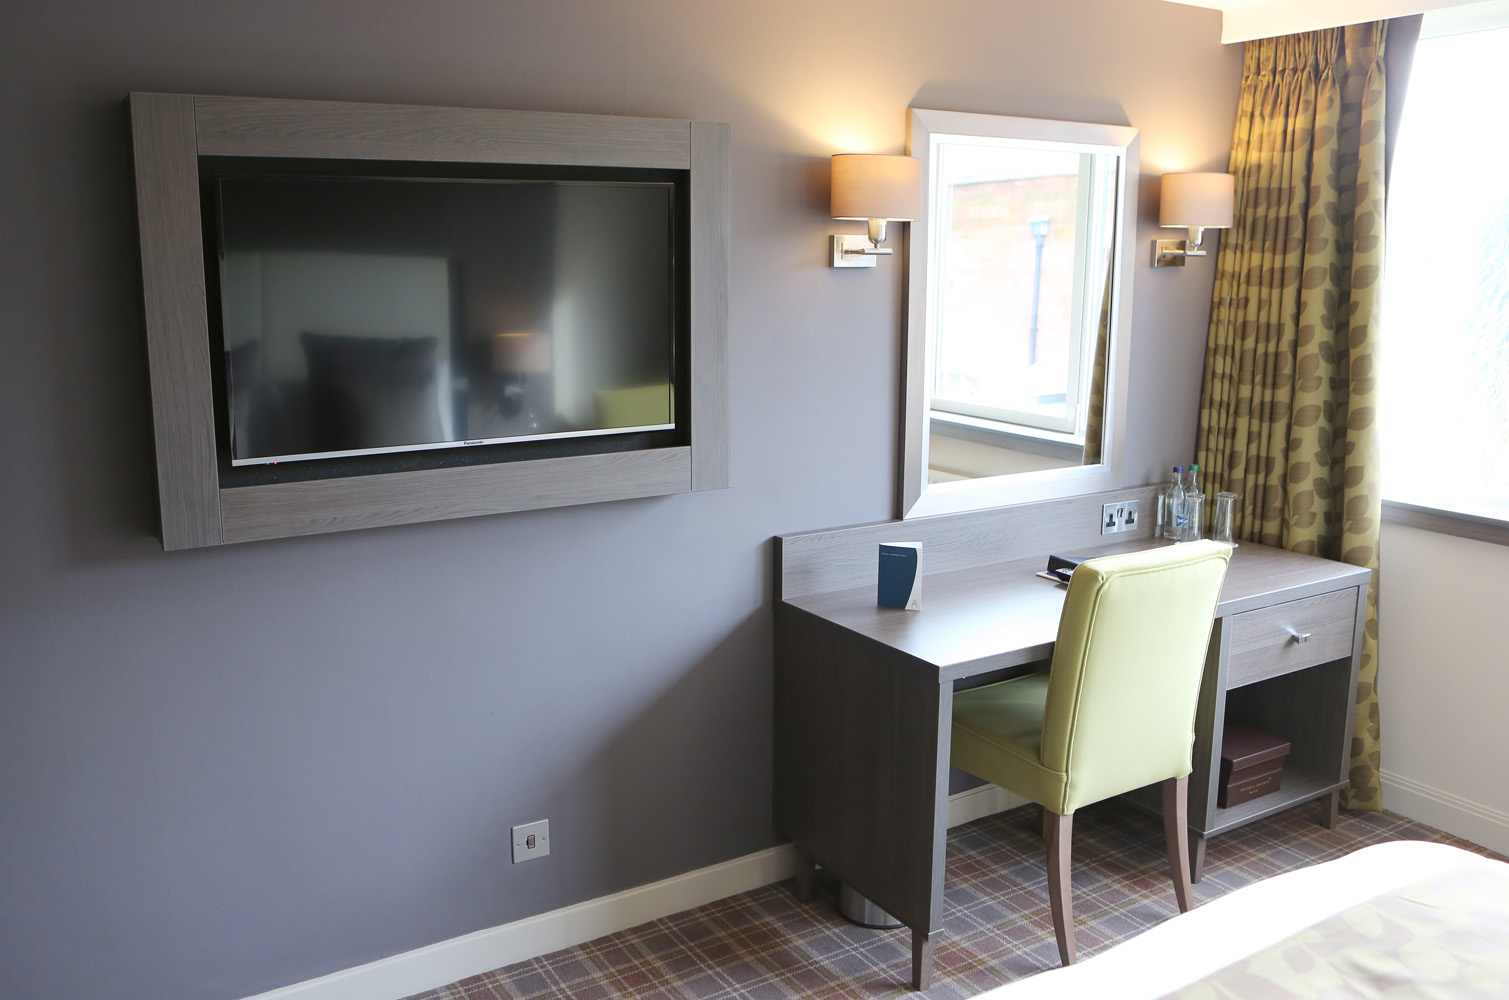 Mirror desk and tv in room